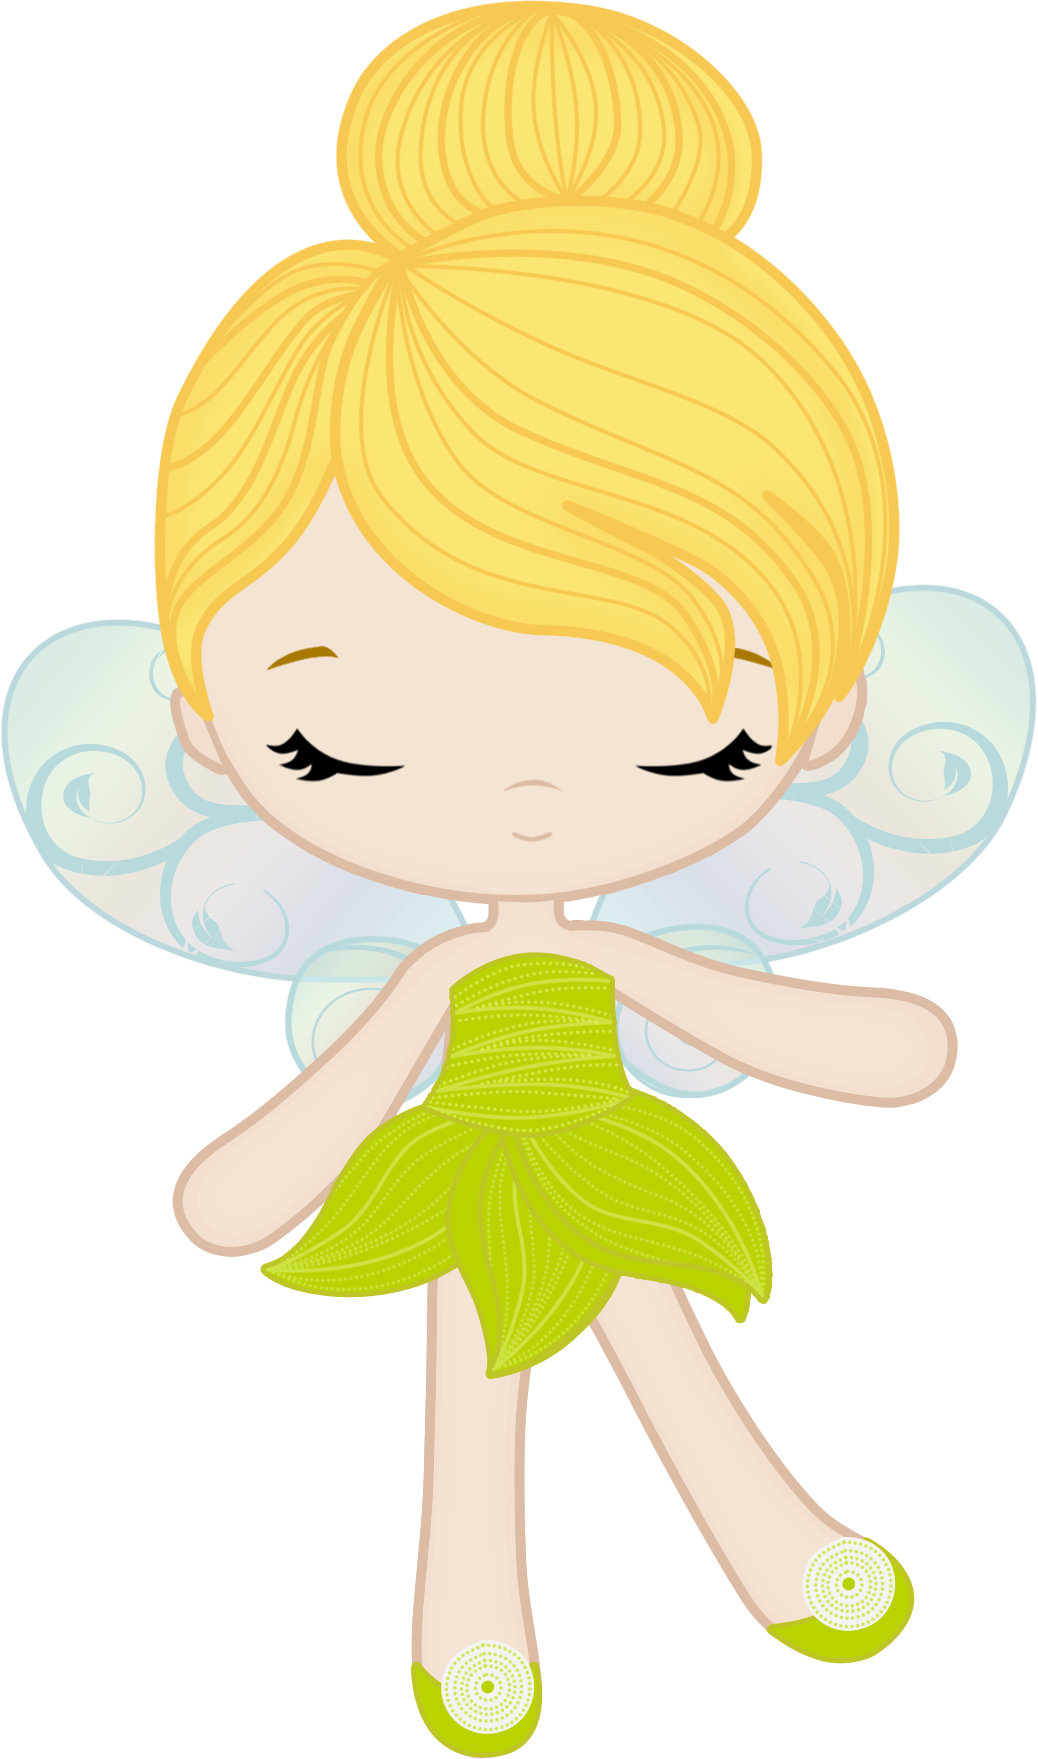 Fairy clipart baby fairy. Ib gndzqmjmosv png pinterest